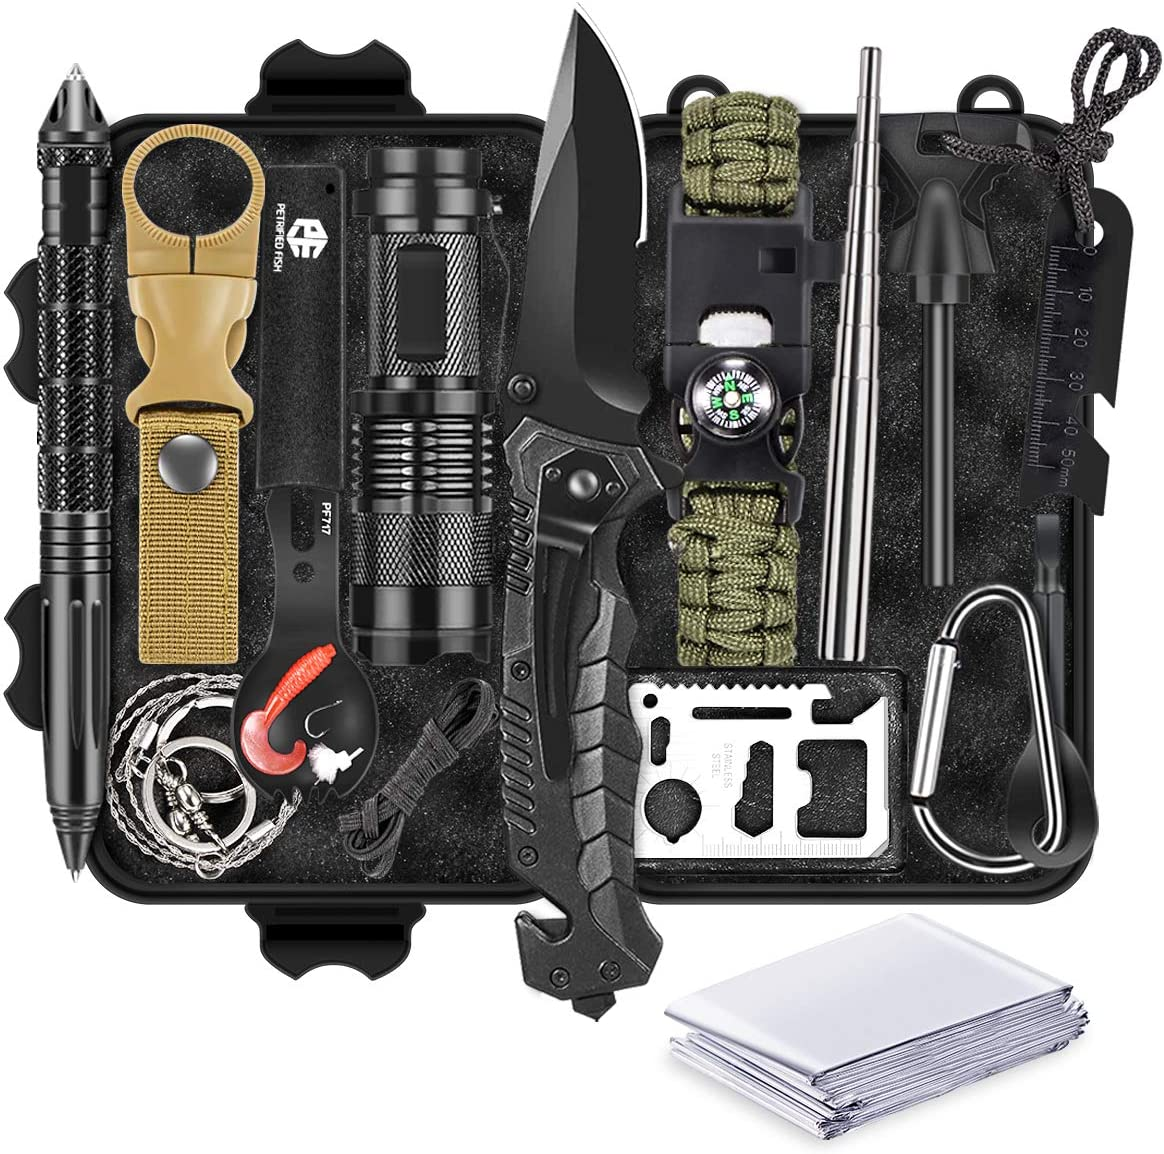 13 in 1 Survival Gear Kit, Fathers Day Idea Gifts for Dad, Outdoor Emergency Survival Tools for Camping Fishing Hunting Hiking, Idea Gifts for Men Dad Husband Father